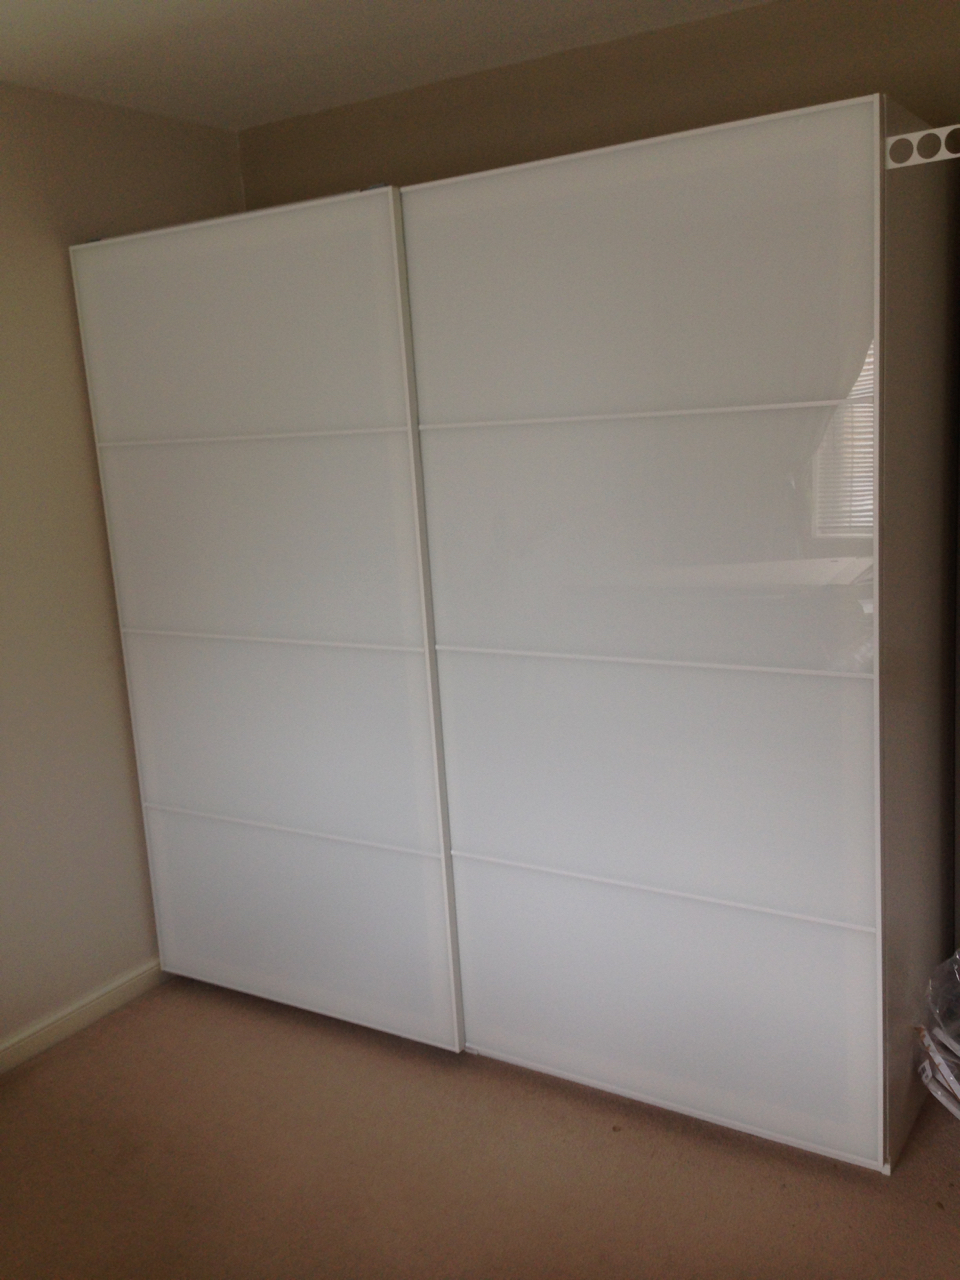 Ikea PAX sliding white glass Farvik wardrobes assembled by www.norwichflatpack.co.uk